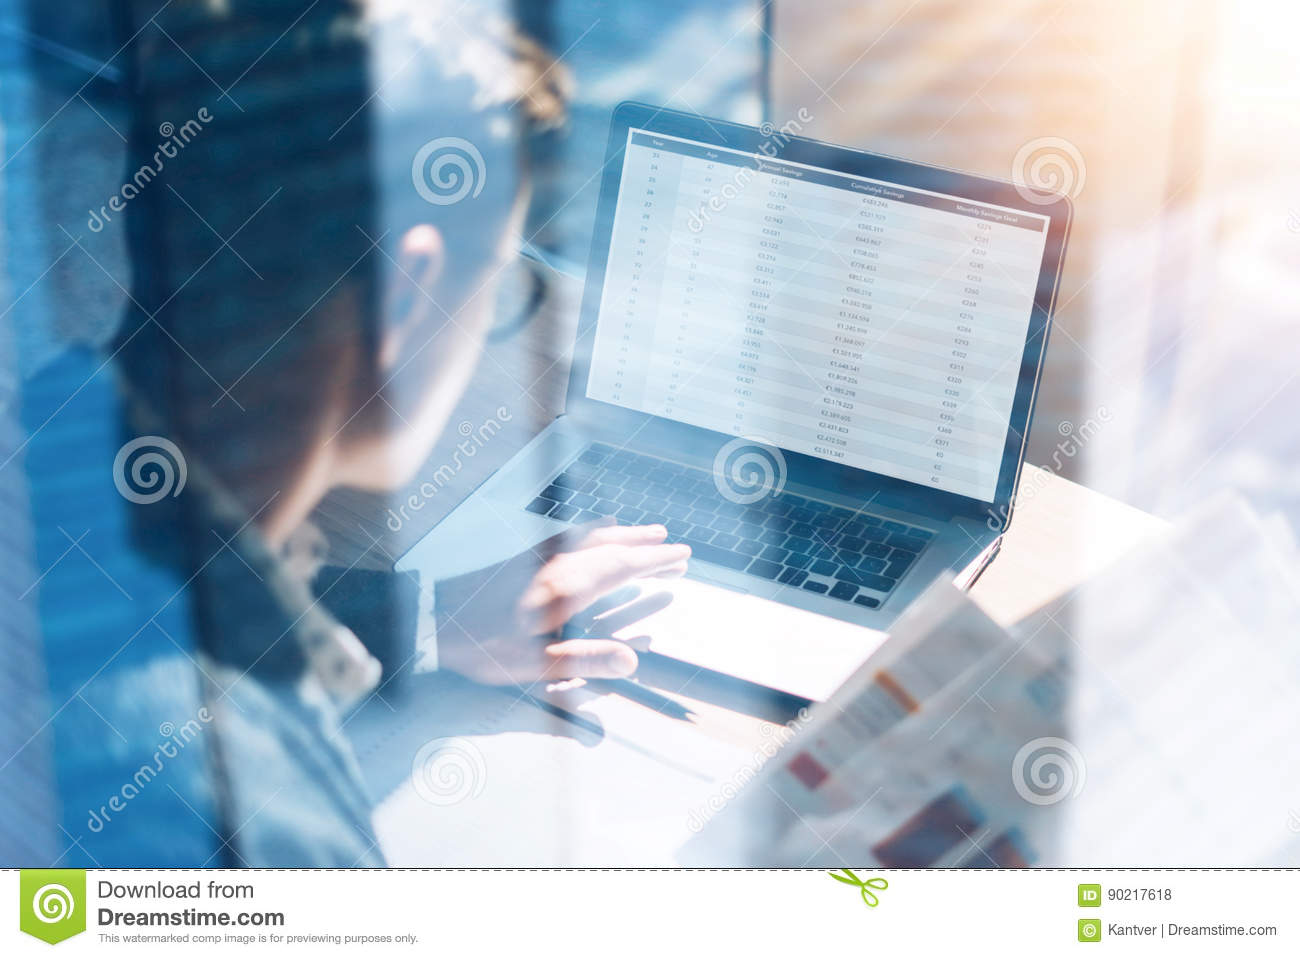 Closeup view of banking finance analyst in eyeglasses working at sunny office on laptop while sitting at wooden table